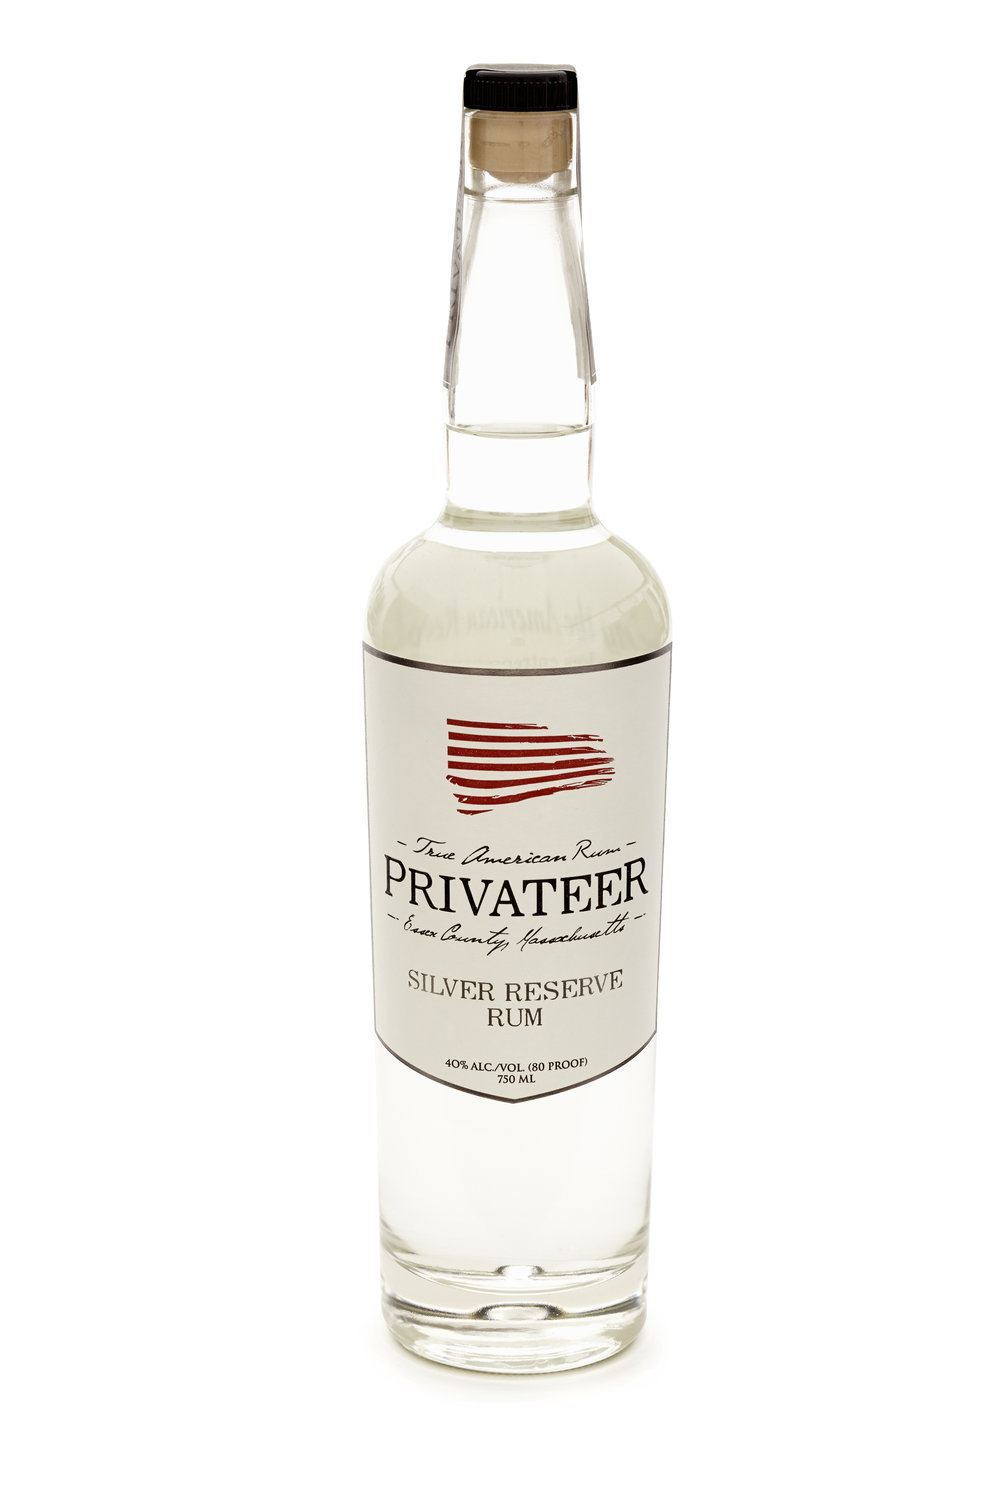 craft-spirits-rum-privateer-silver